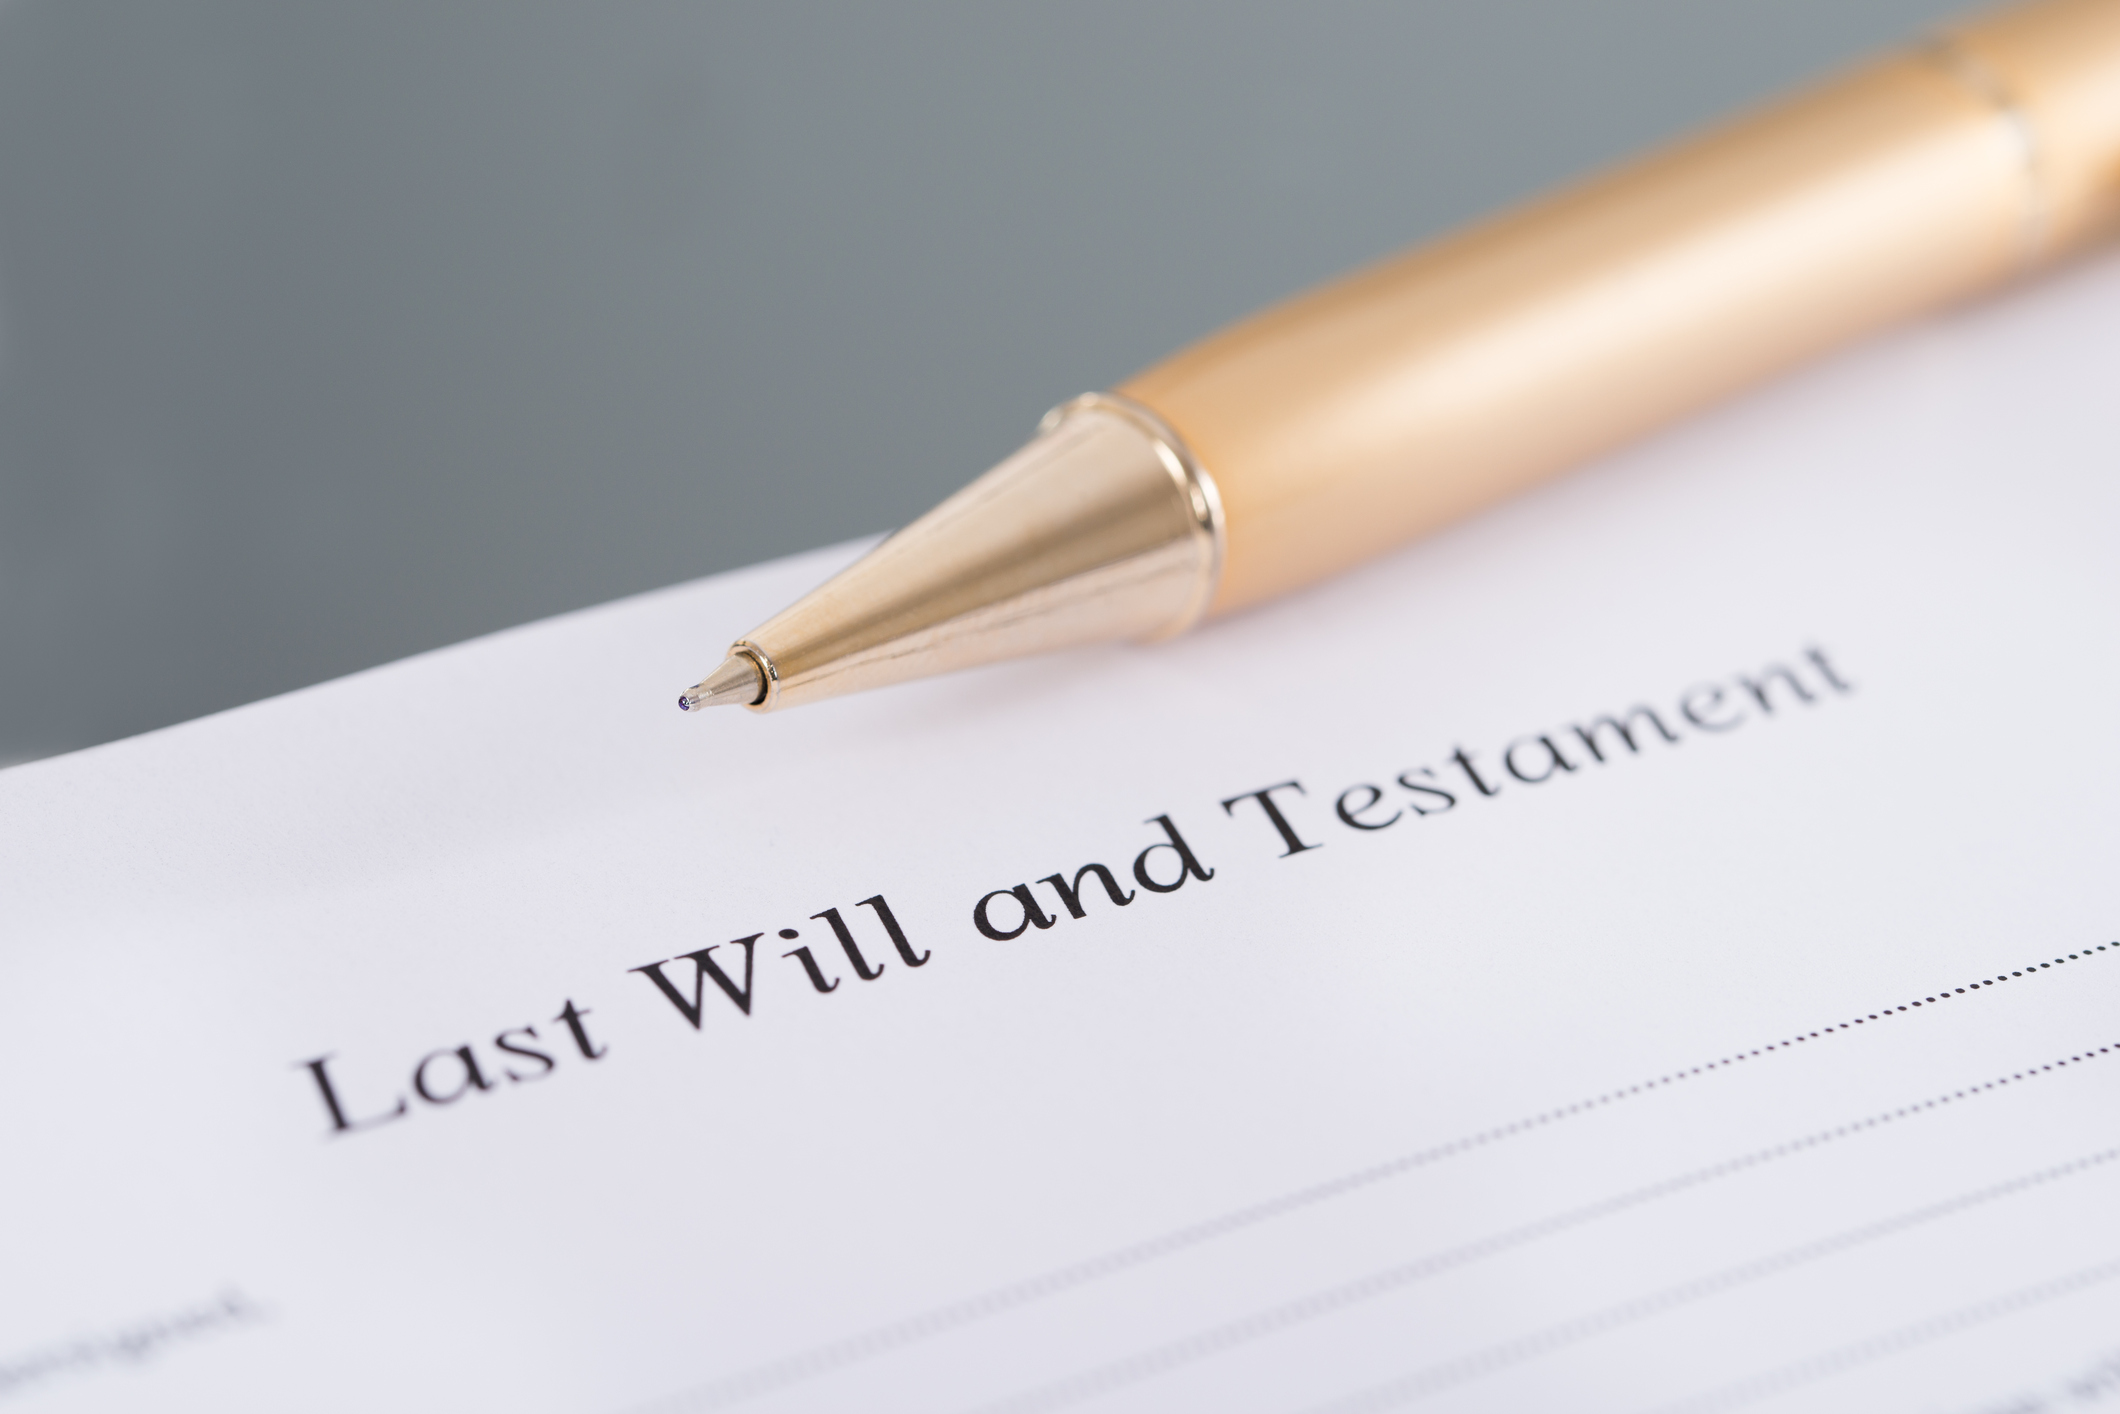 The probate process is court-supervised. If a person dies with a valid will, the proceeding is called   Testate  . If the person dies without a valid will, the proceeding is   Intestate   and in that case the State of Florida determines who inherits the property.